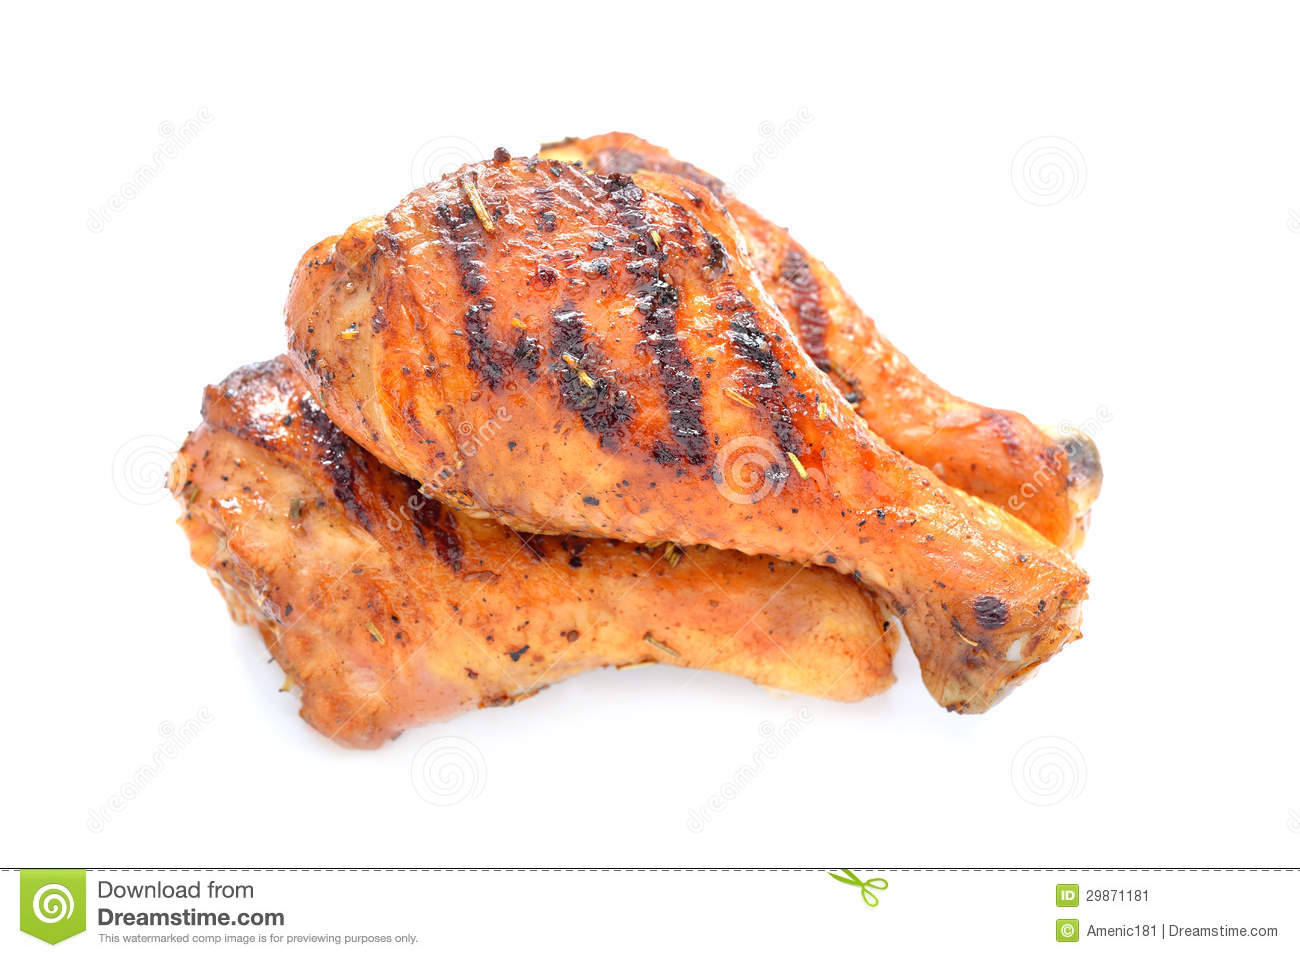 Grilled Chicken Stock Image - Image: 29871181